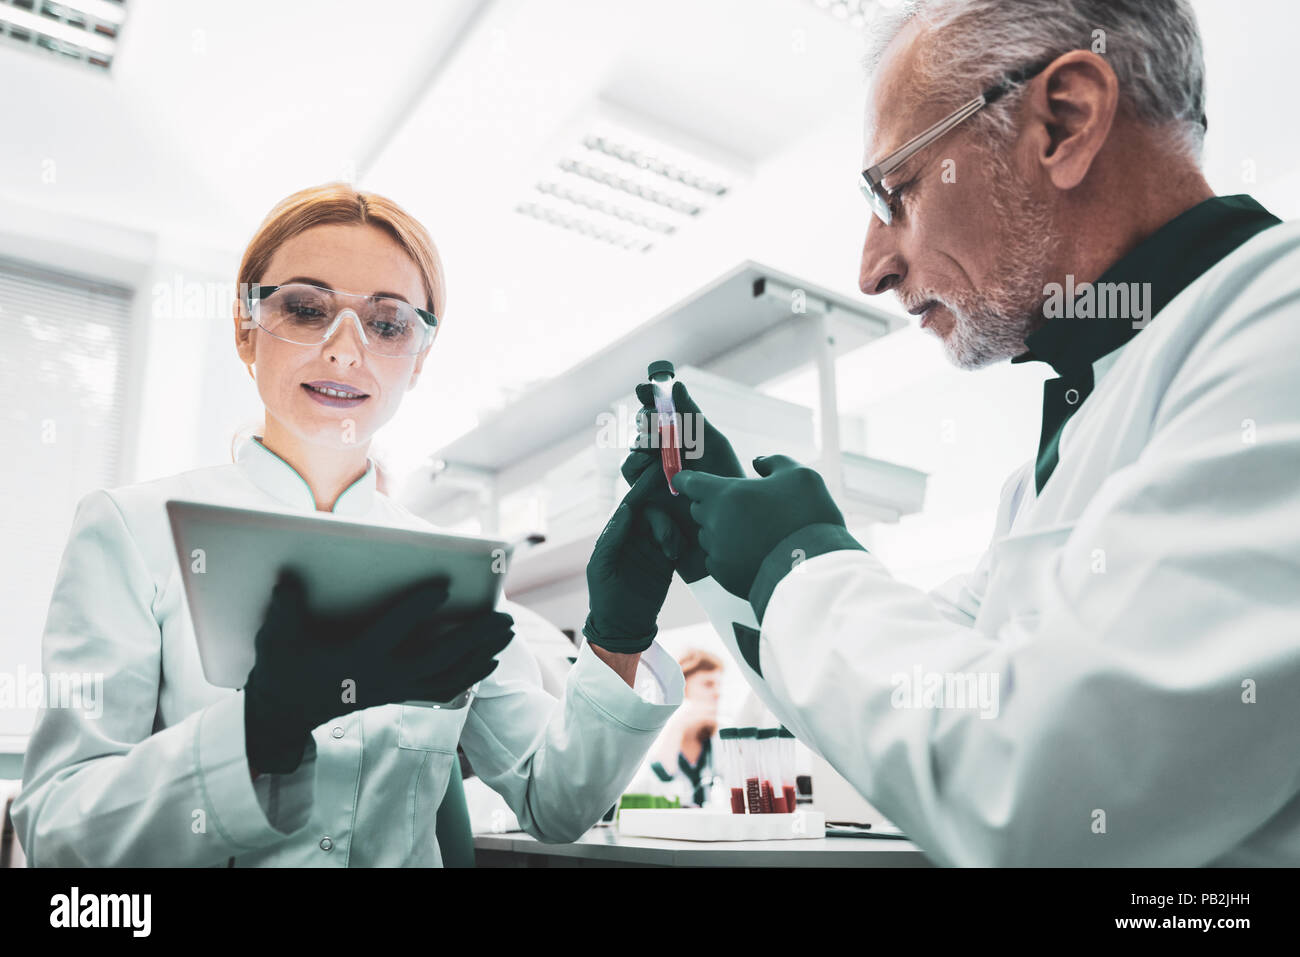 Young biologist using modern technologies during working - Stock Image